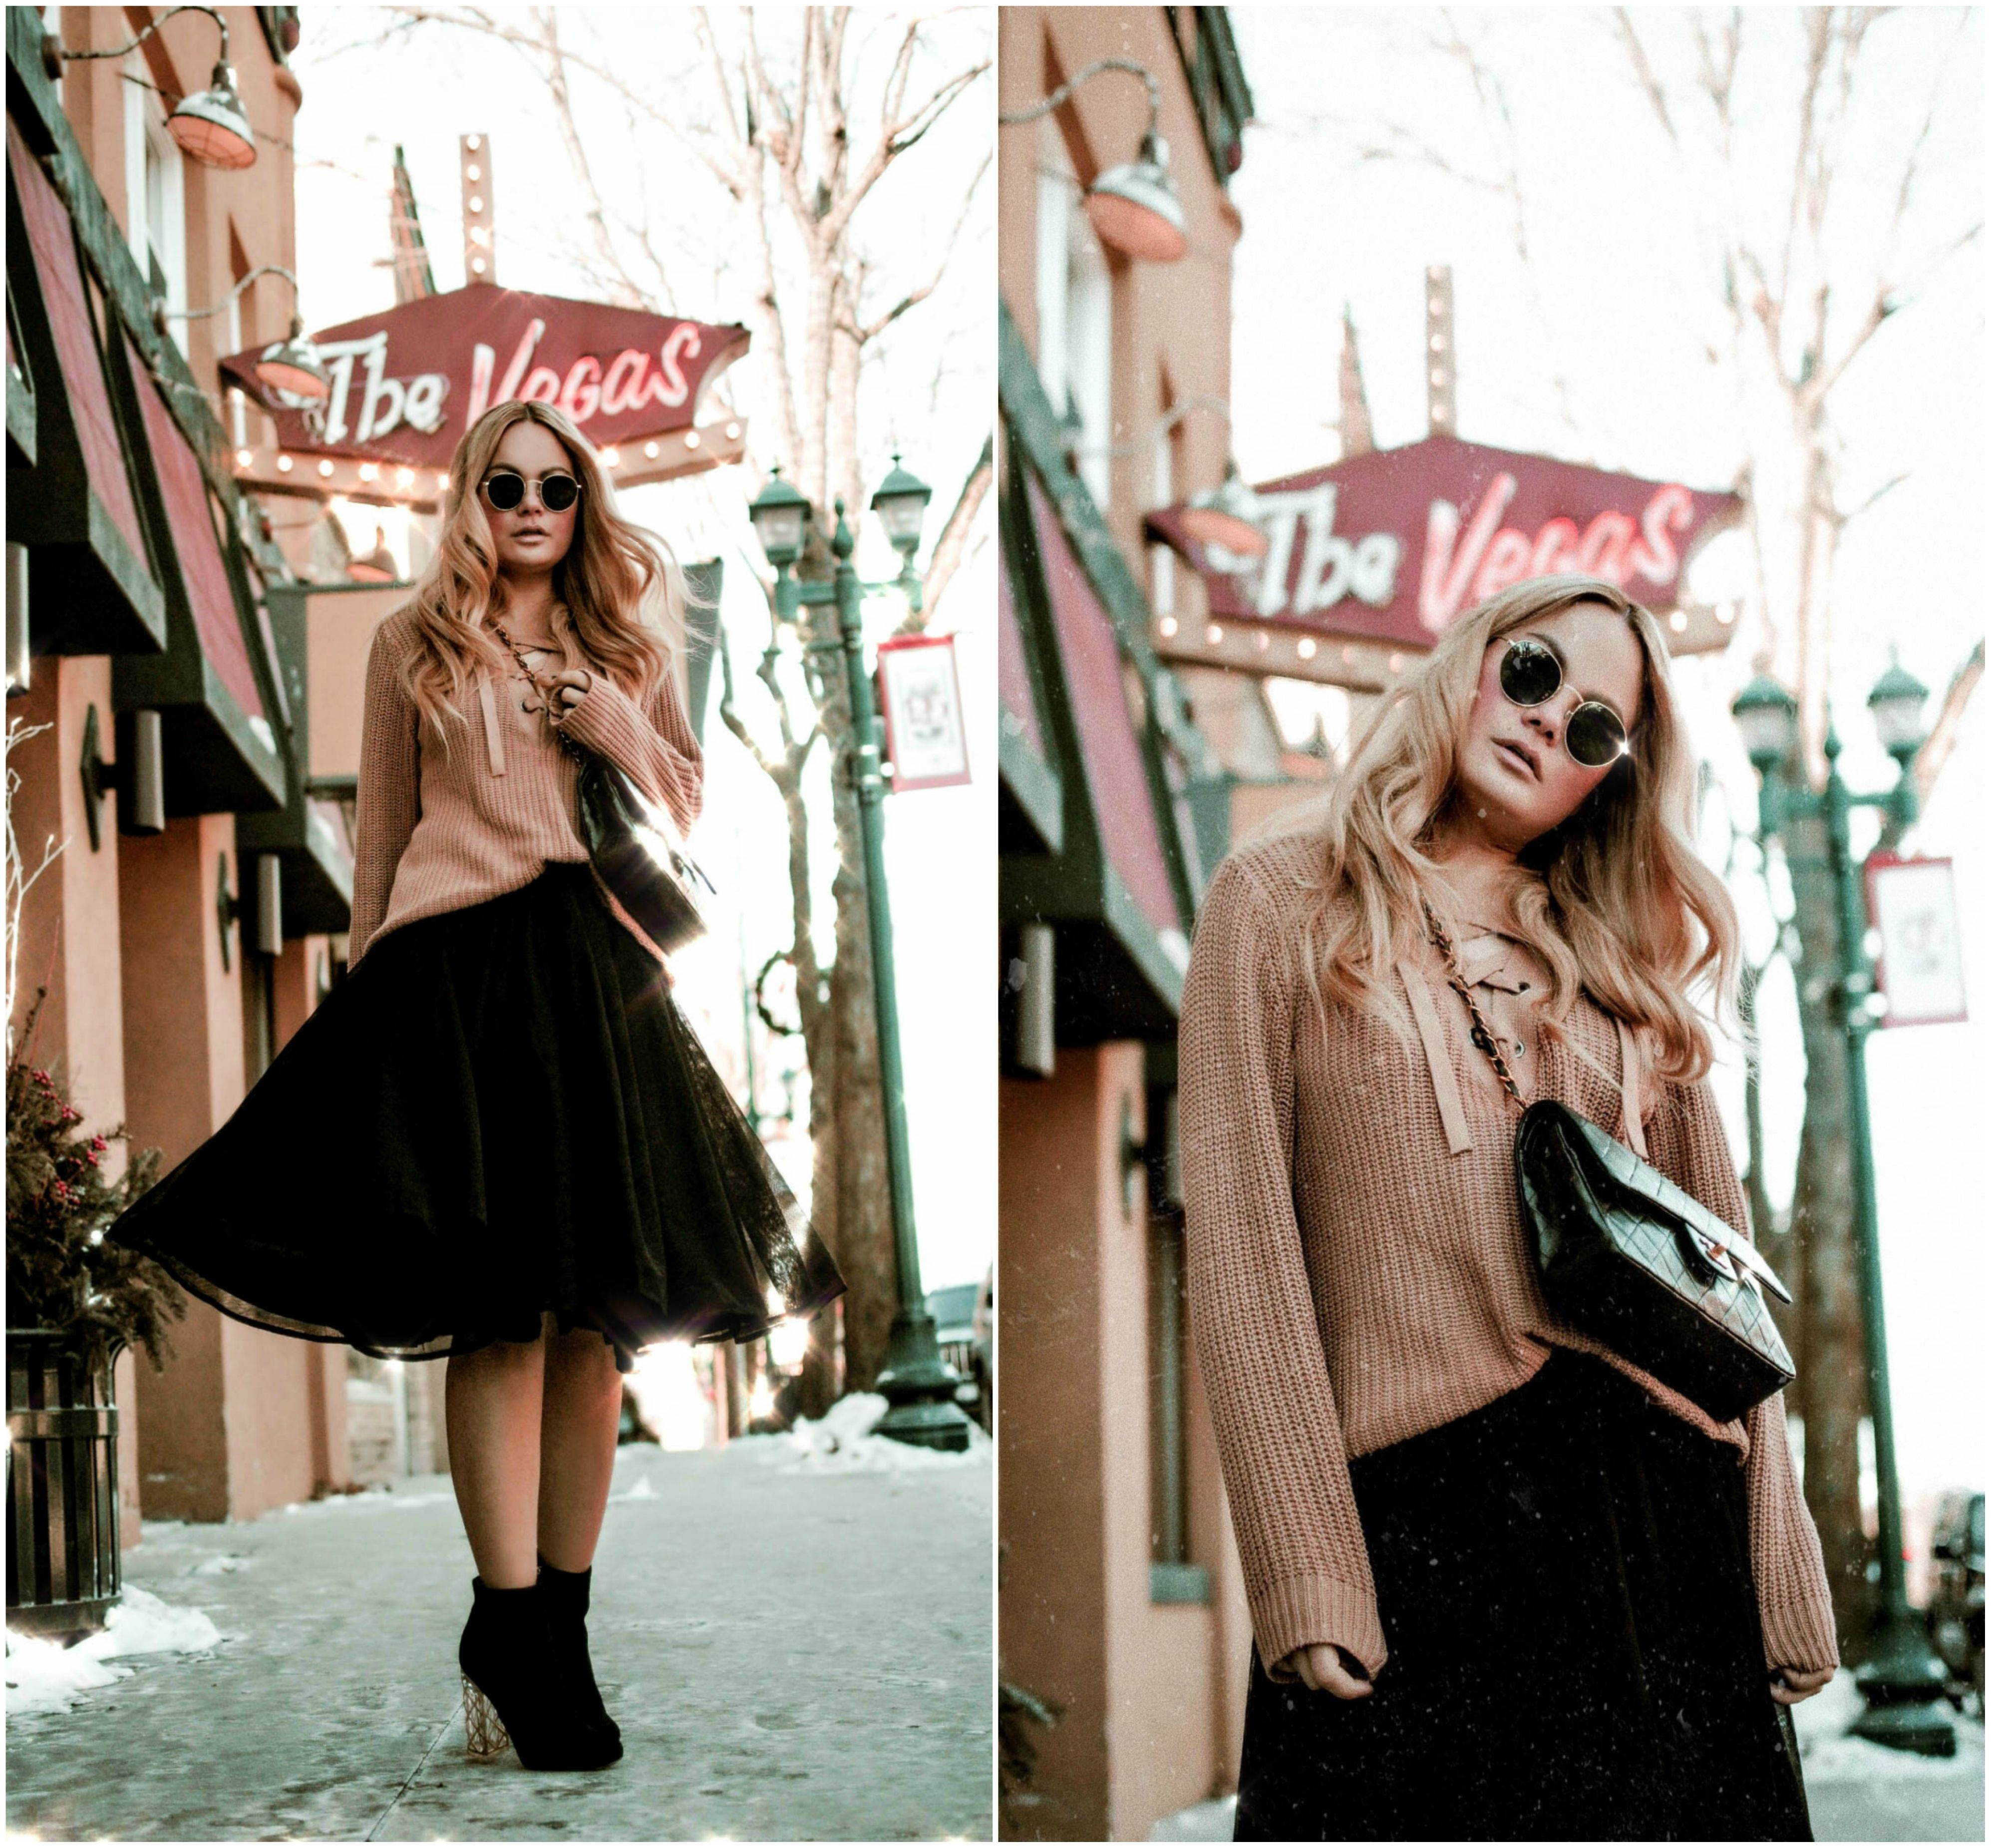 36cc177e2a72 Vanessa-Lambert-Blogger-What-Would-V-Wear -black-tulle-skirt-lace-up-sweater-Carrie-Bradshaw-moment